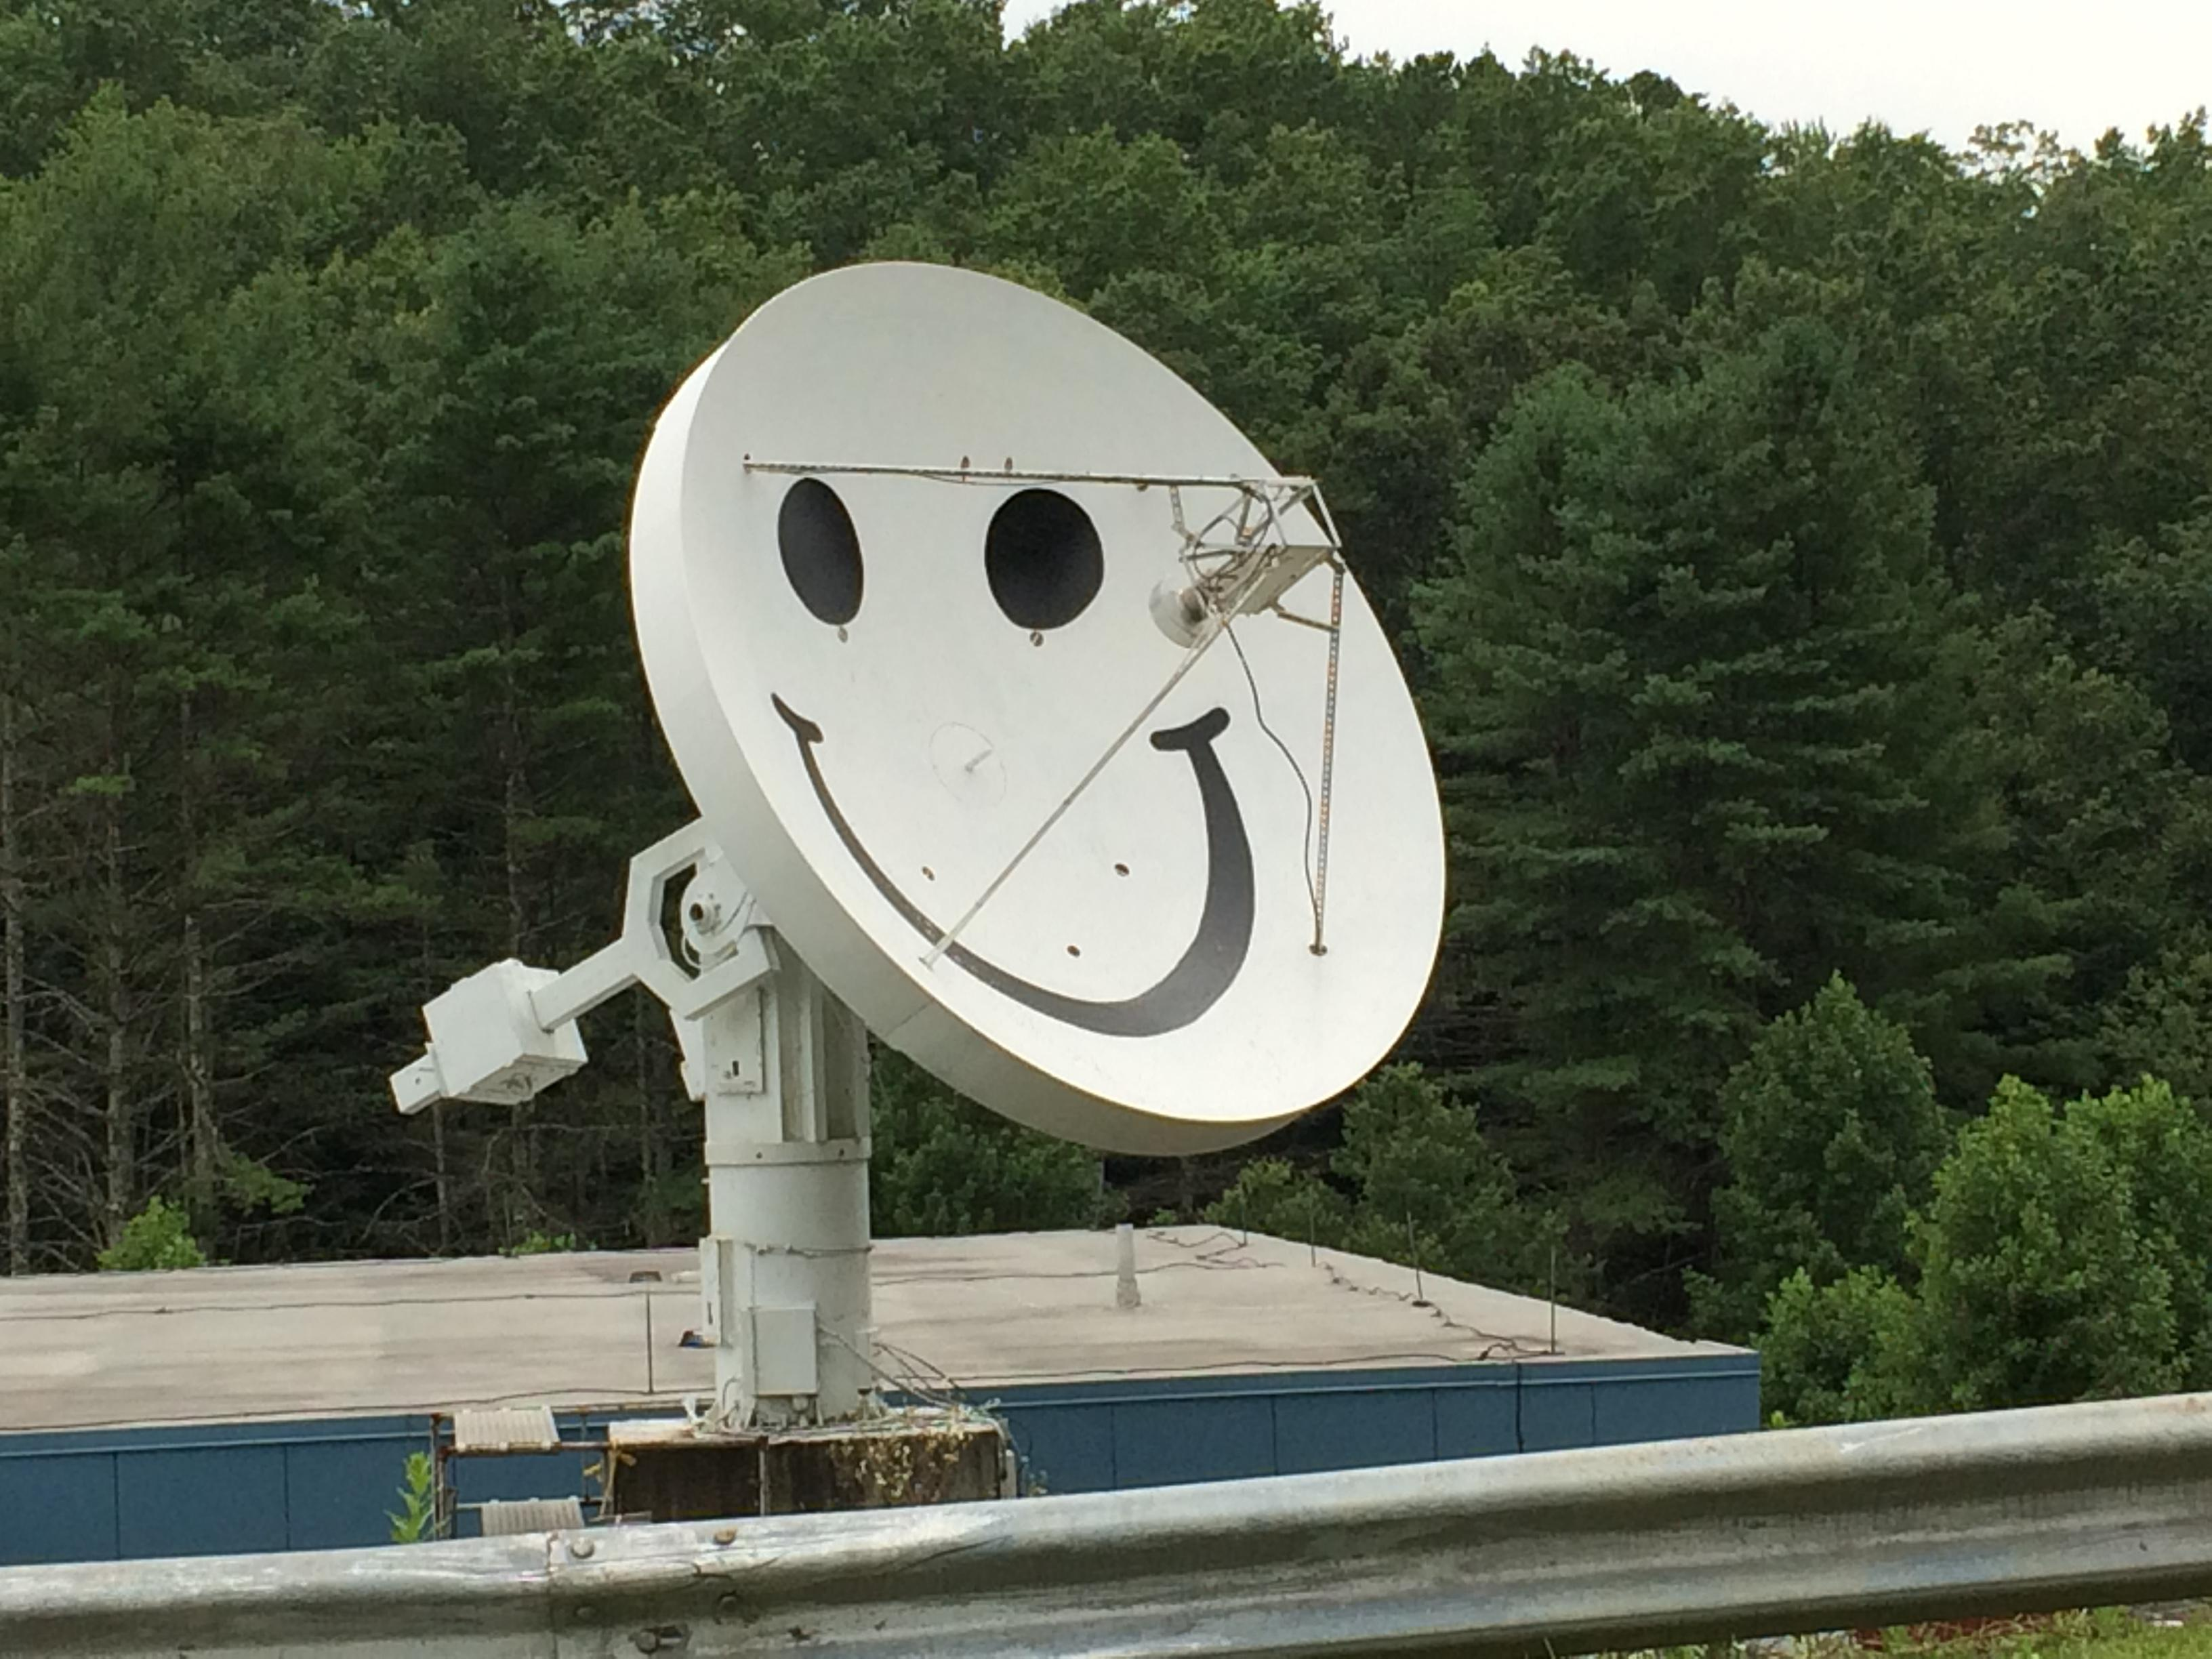 Smiley, the 4.6 meter radio telescope, greets viewers as they drive onto P.A.R.I.'s campus. (Photo credit: WLOS Staff)